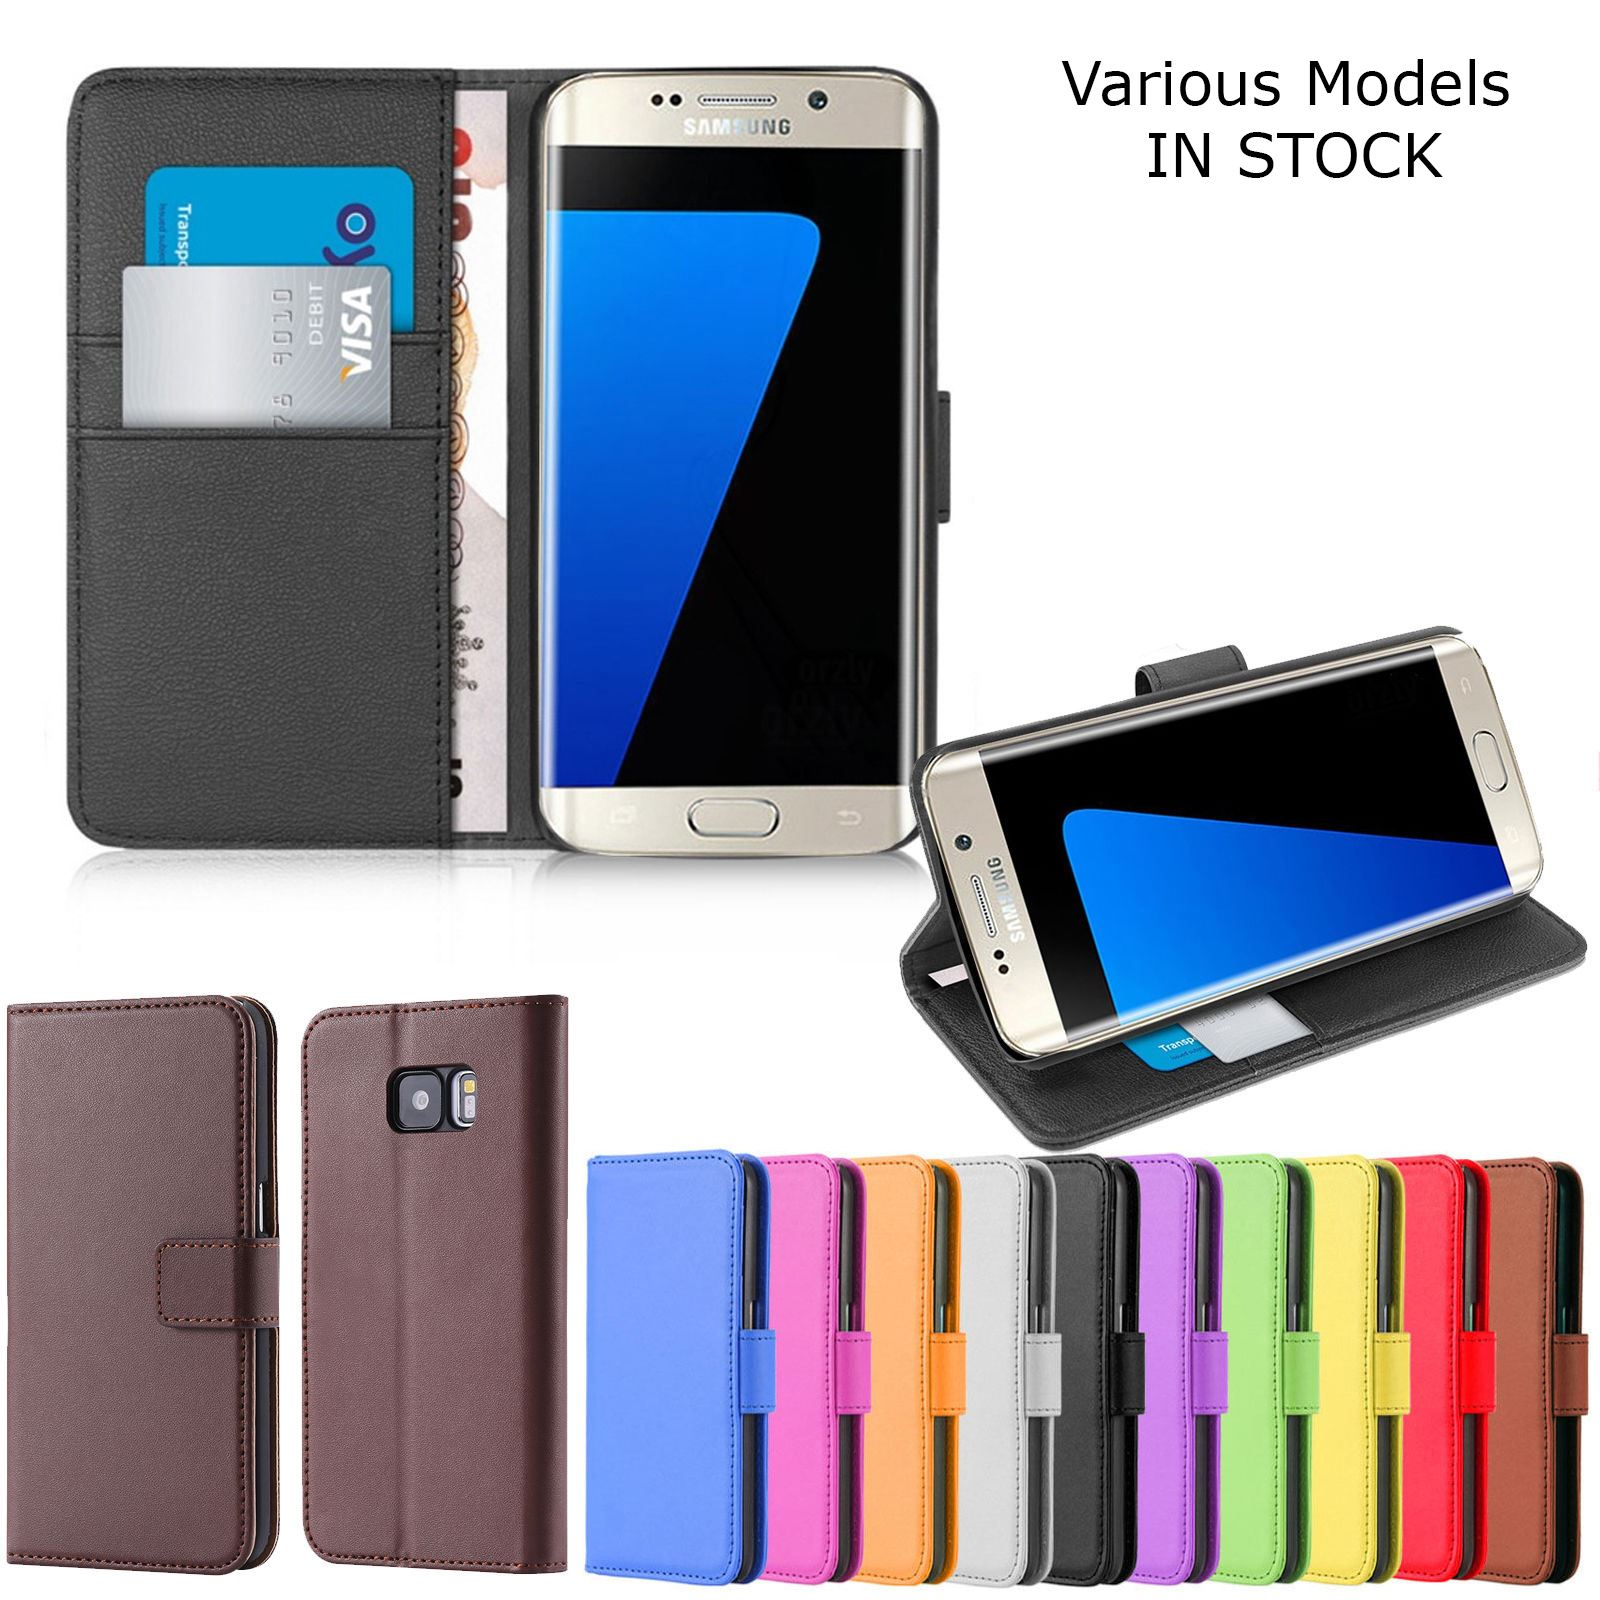 online retailer 6ea65 cca3c Details about Leather Book Wallet Magnetic Flip Phone Case Cover for  Samsung Galaxy S8 & More